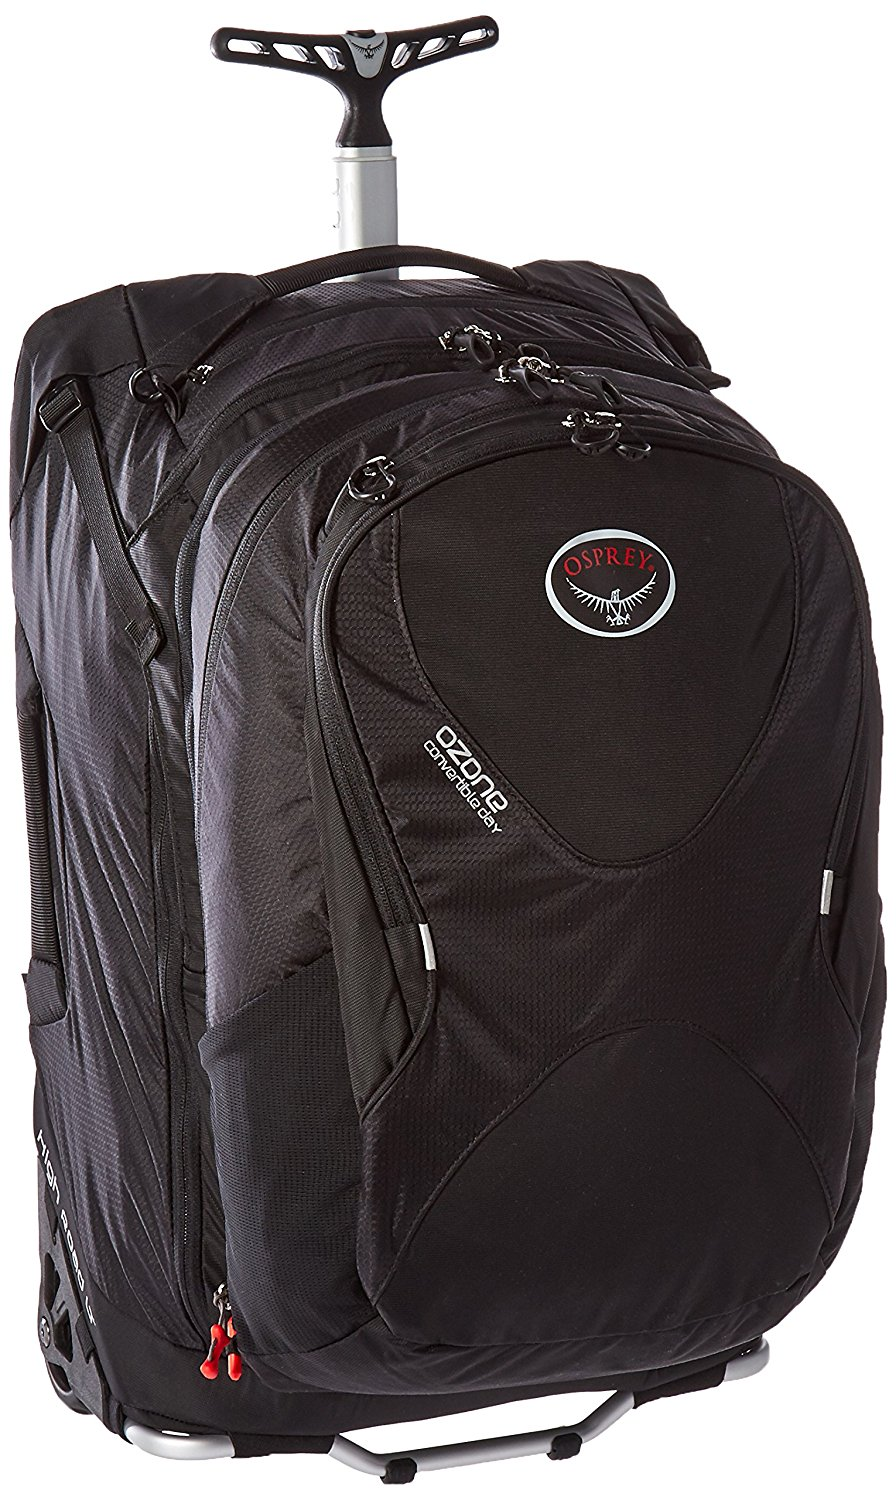 osprey ozone carry on backpack